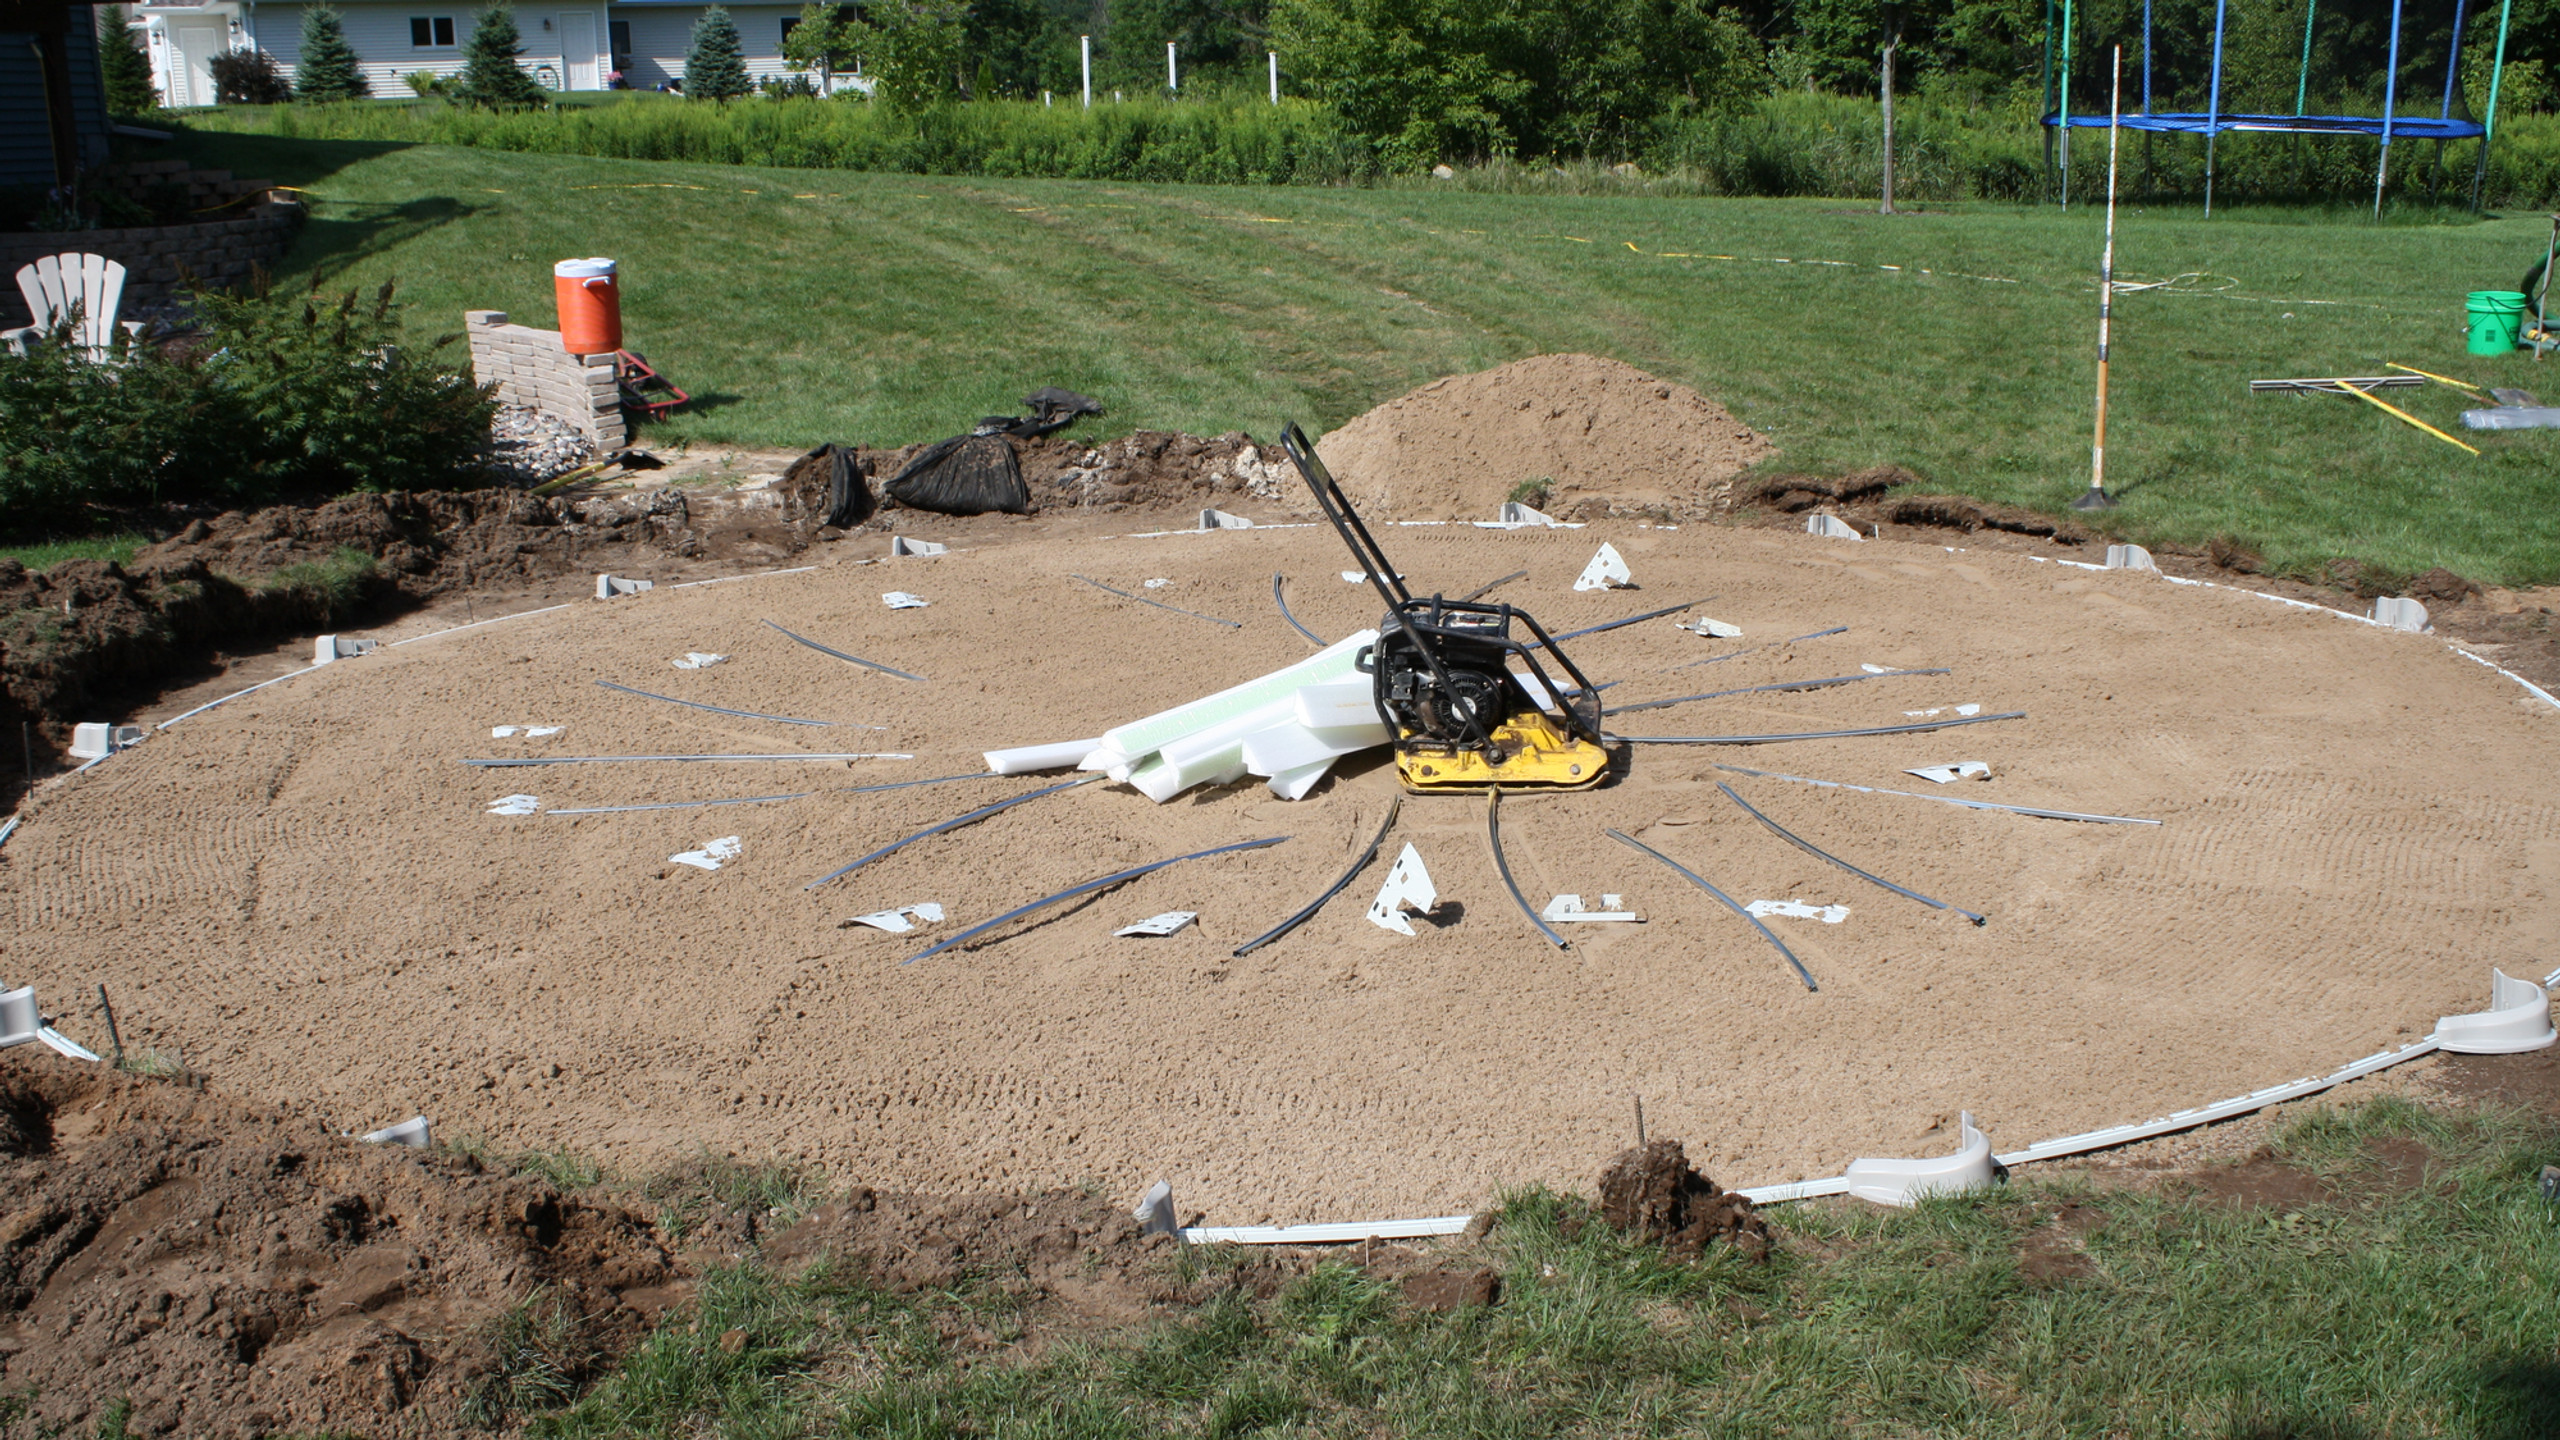 Now we strategically place all of the pool components to aid in efficient installation of your above ground pool.